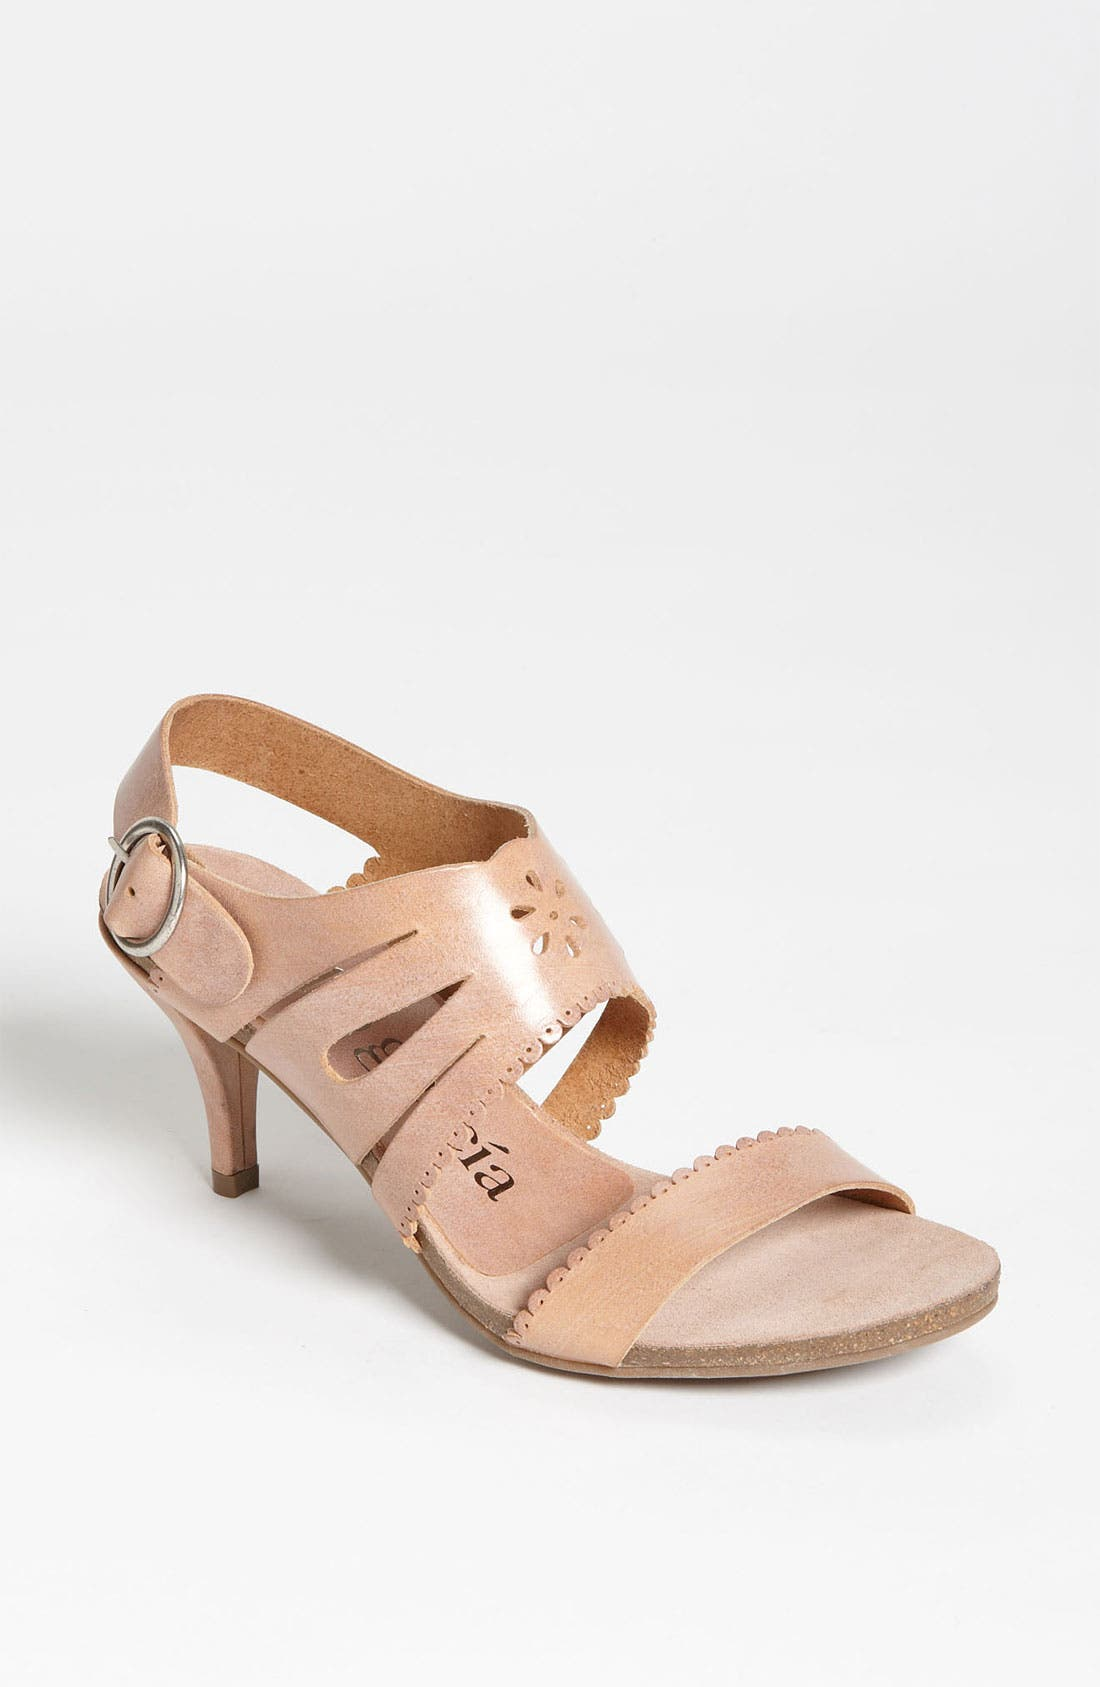 Alternate Image 1 Selected - Pedro Garcia 'Winona' Sandal